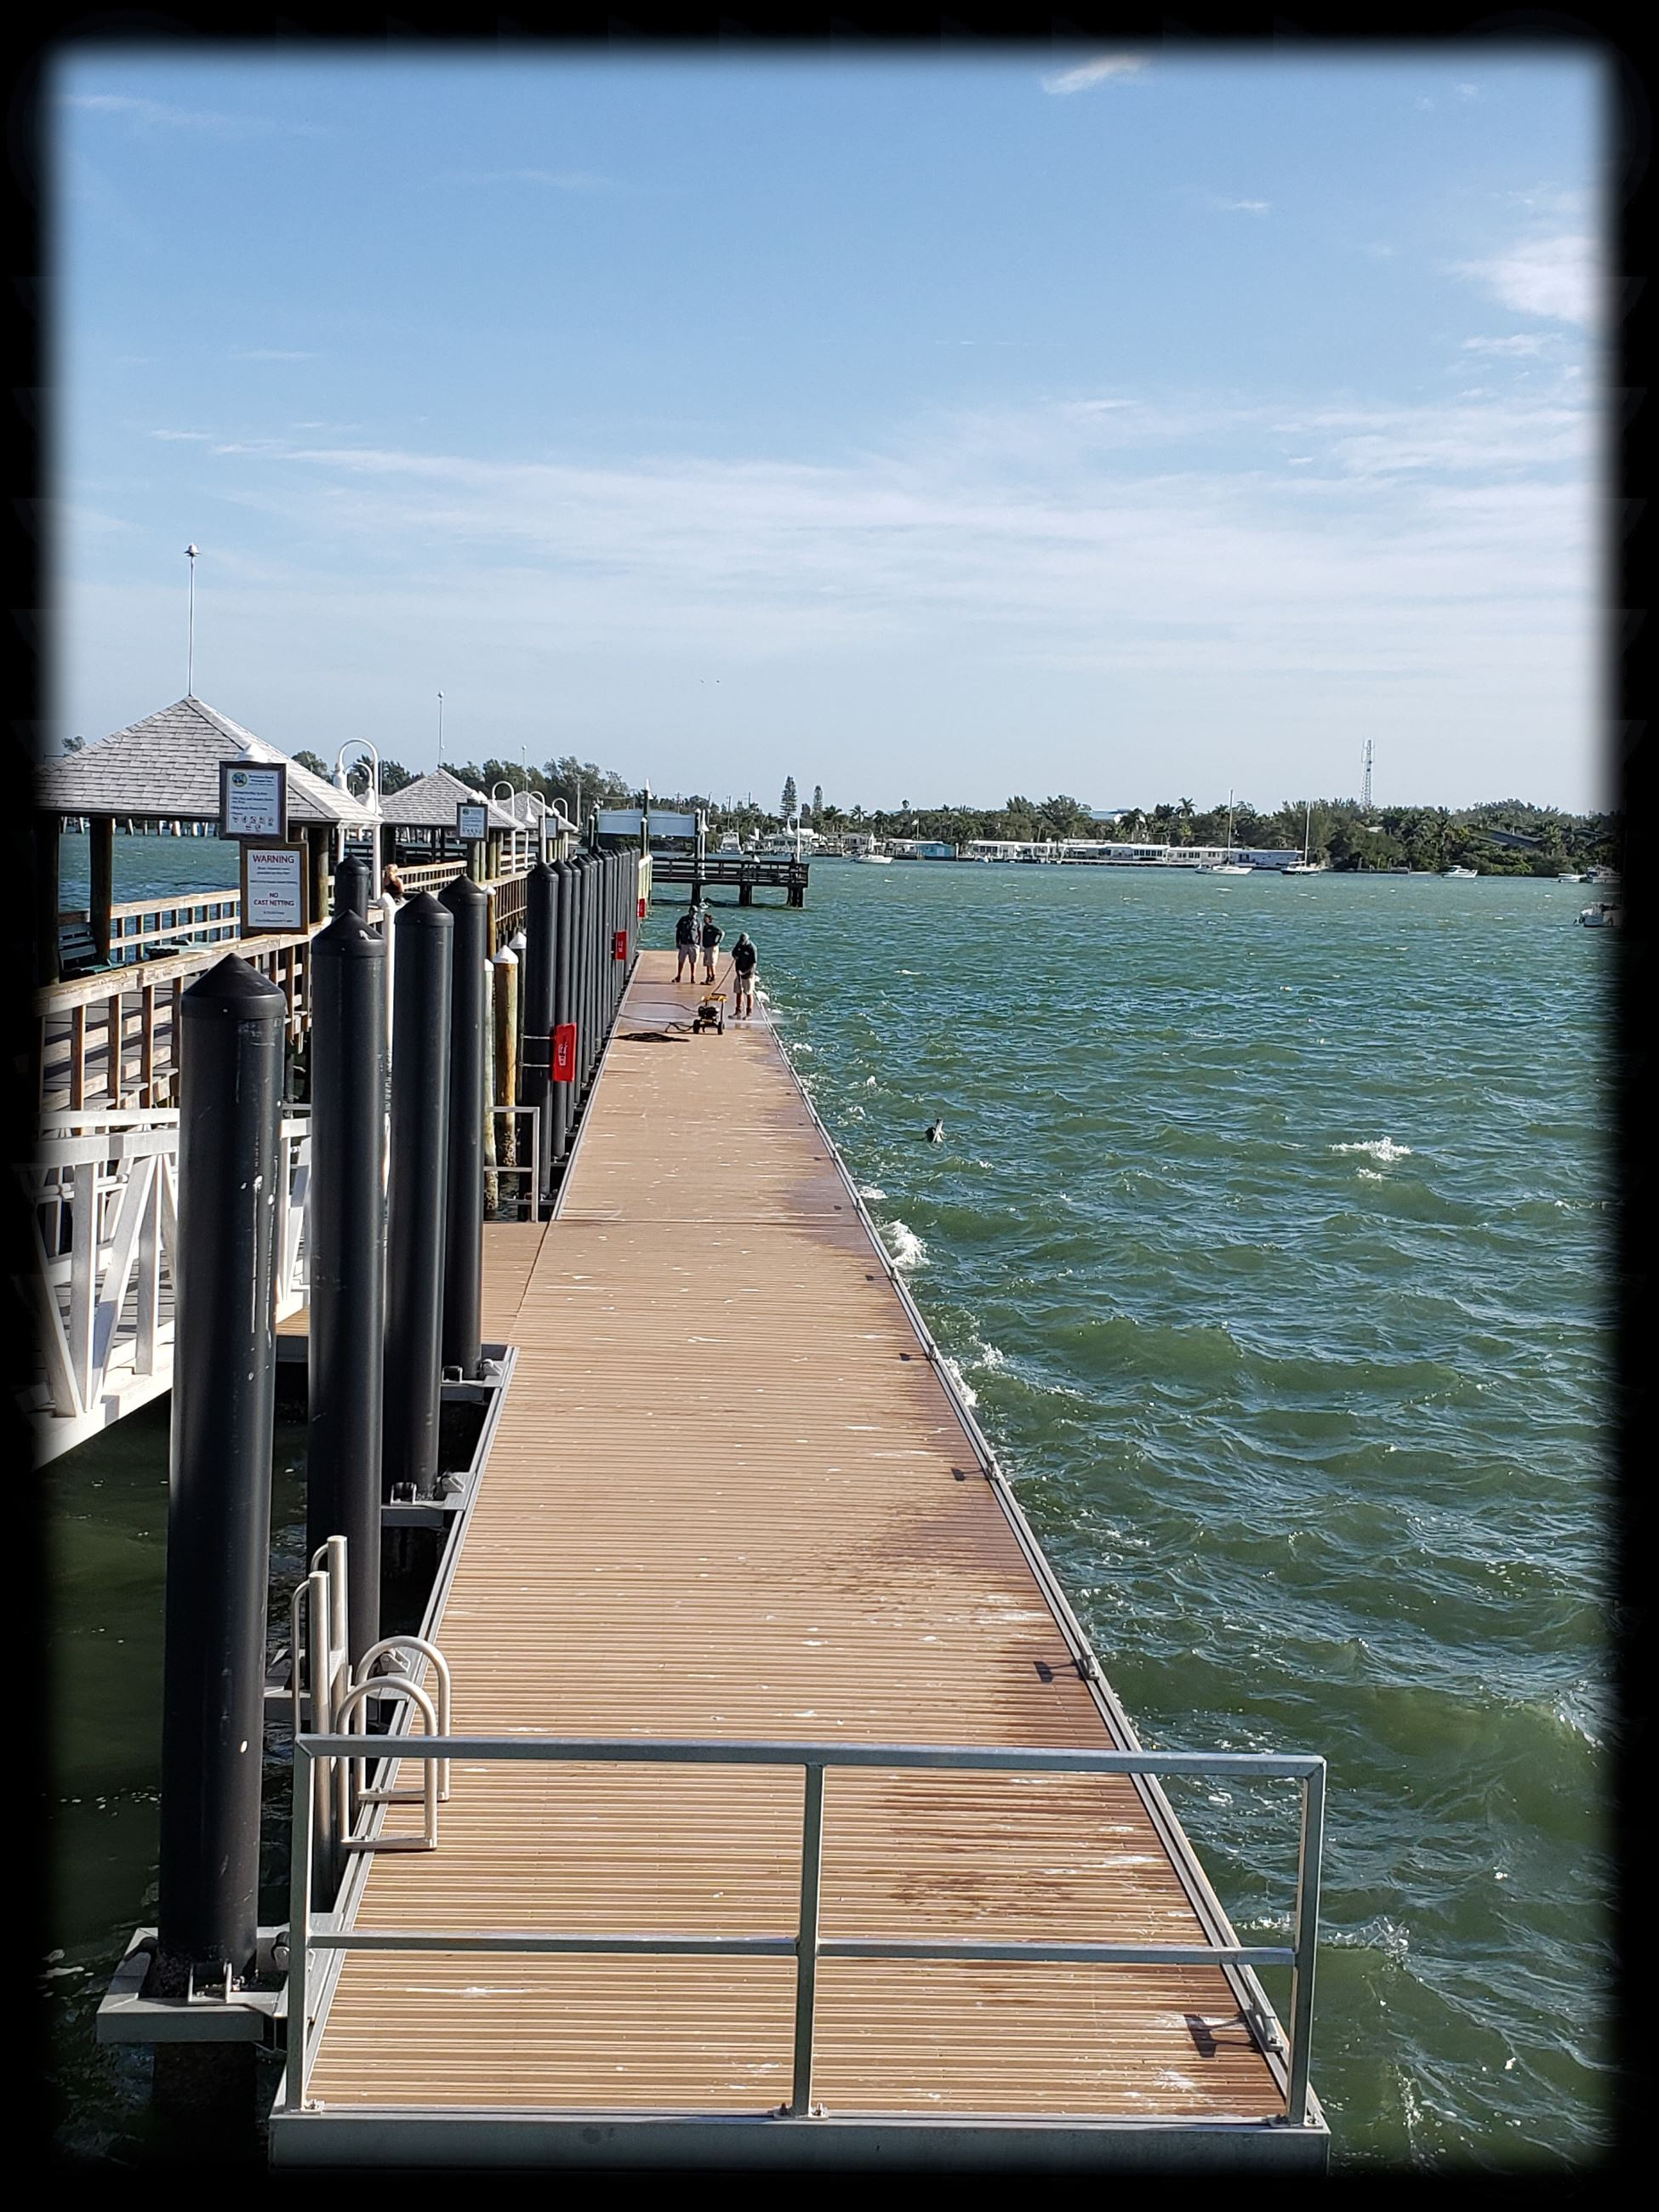 Historic City of Bradenton Beach City Pier - Floating Dock